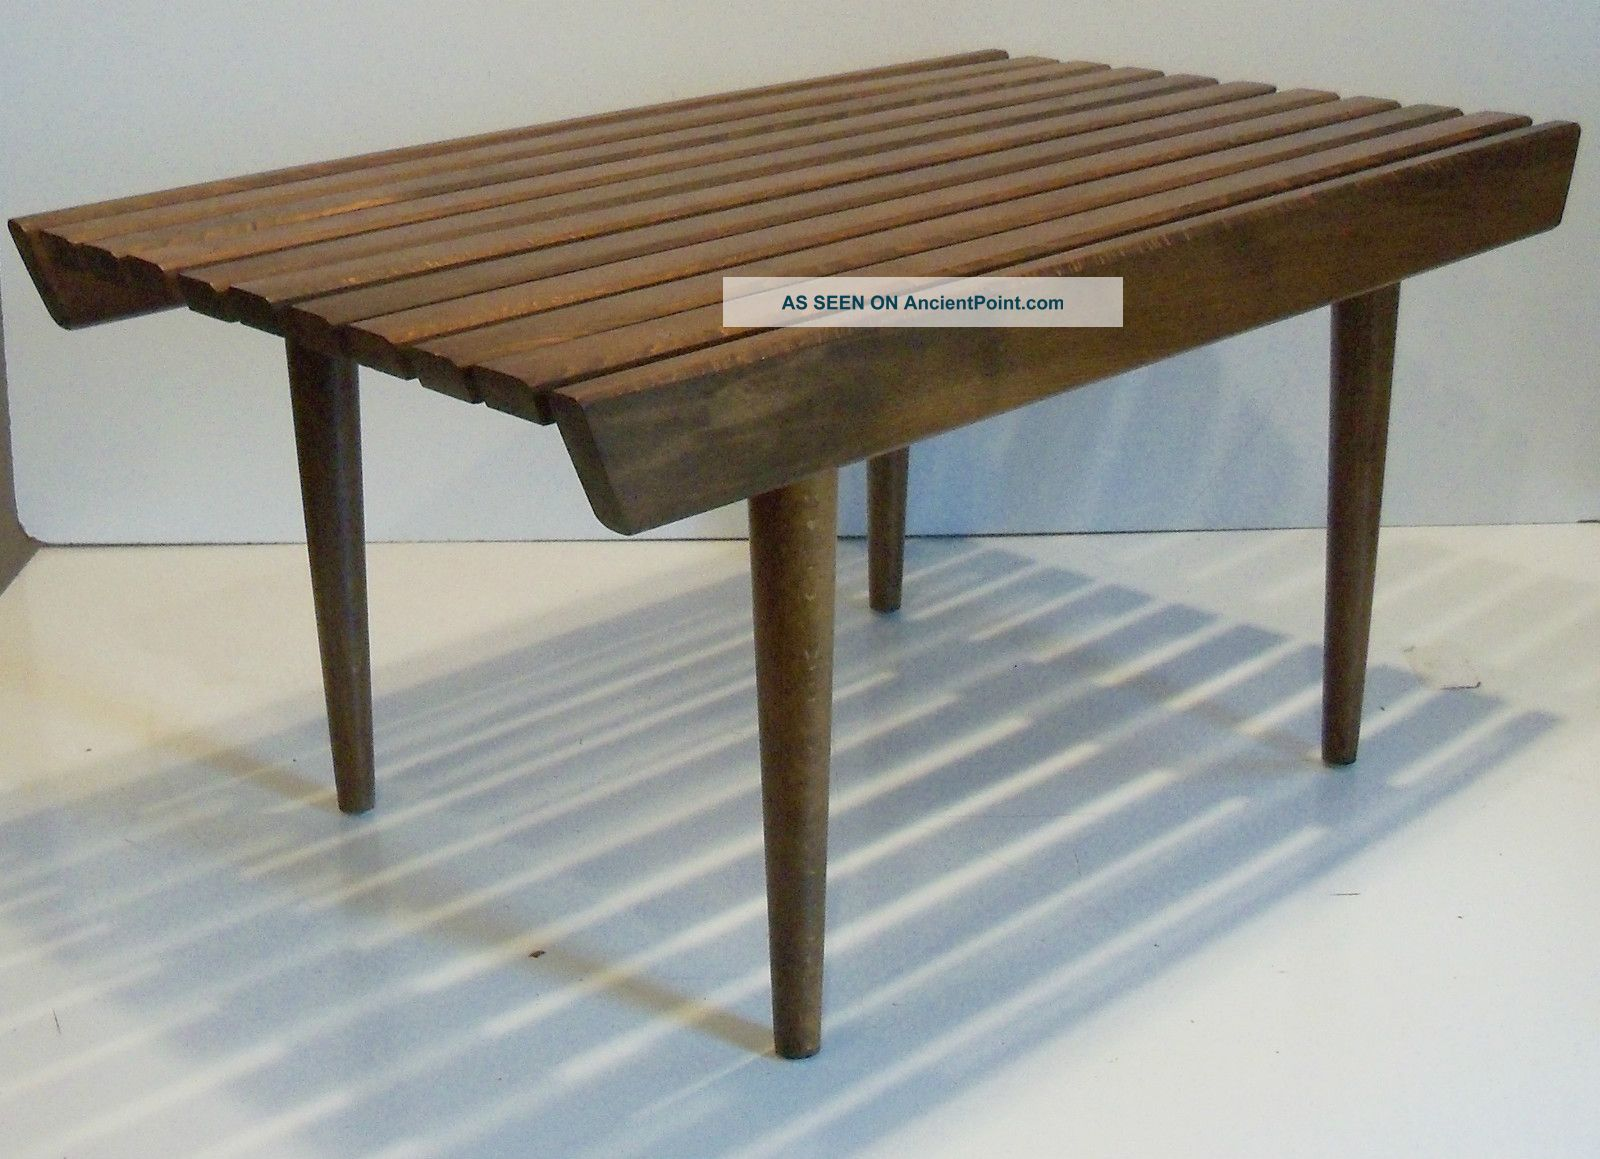 Vintage Eames Era Mid Century Danish Modern Wooden Slat Coffee Table Bench Post-1950 photo